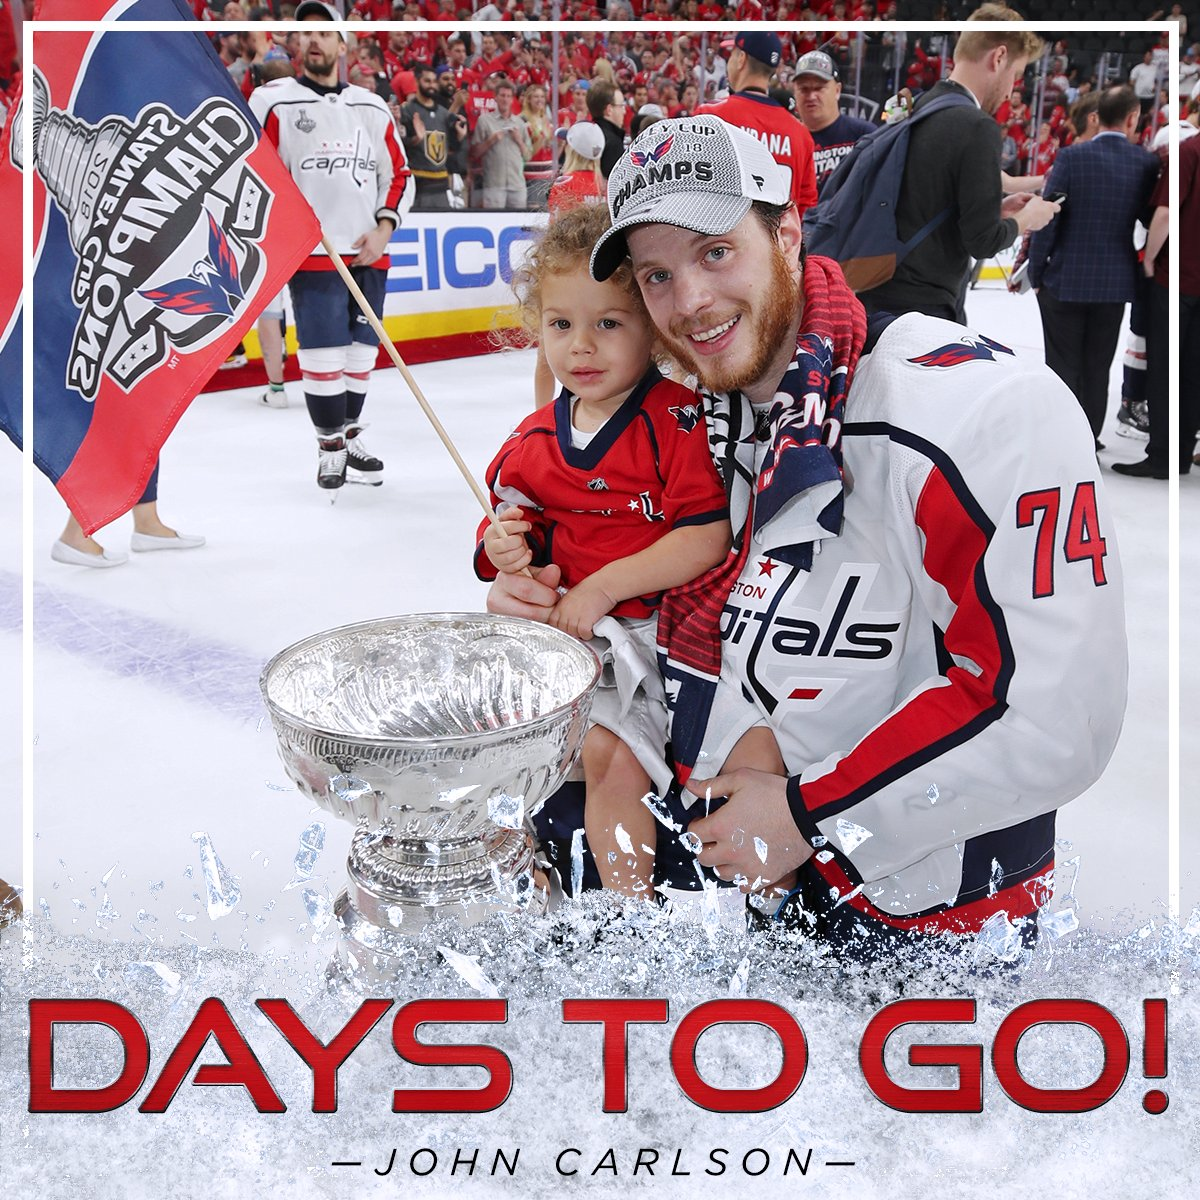 .@JohnCarlson74 more days to go!